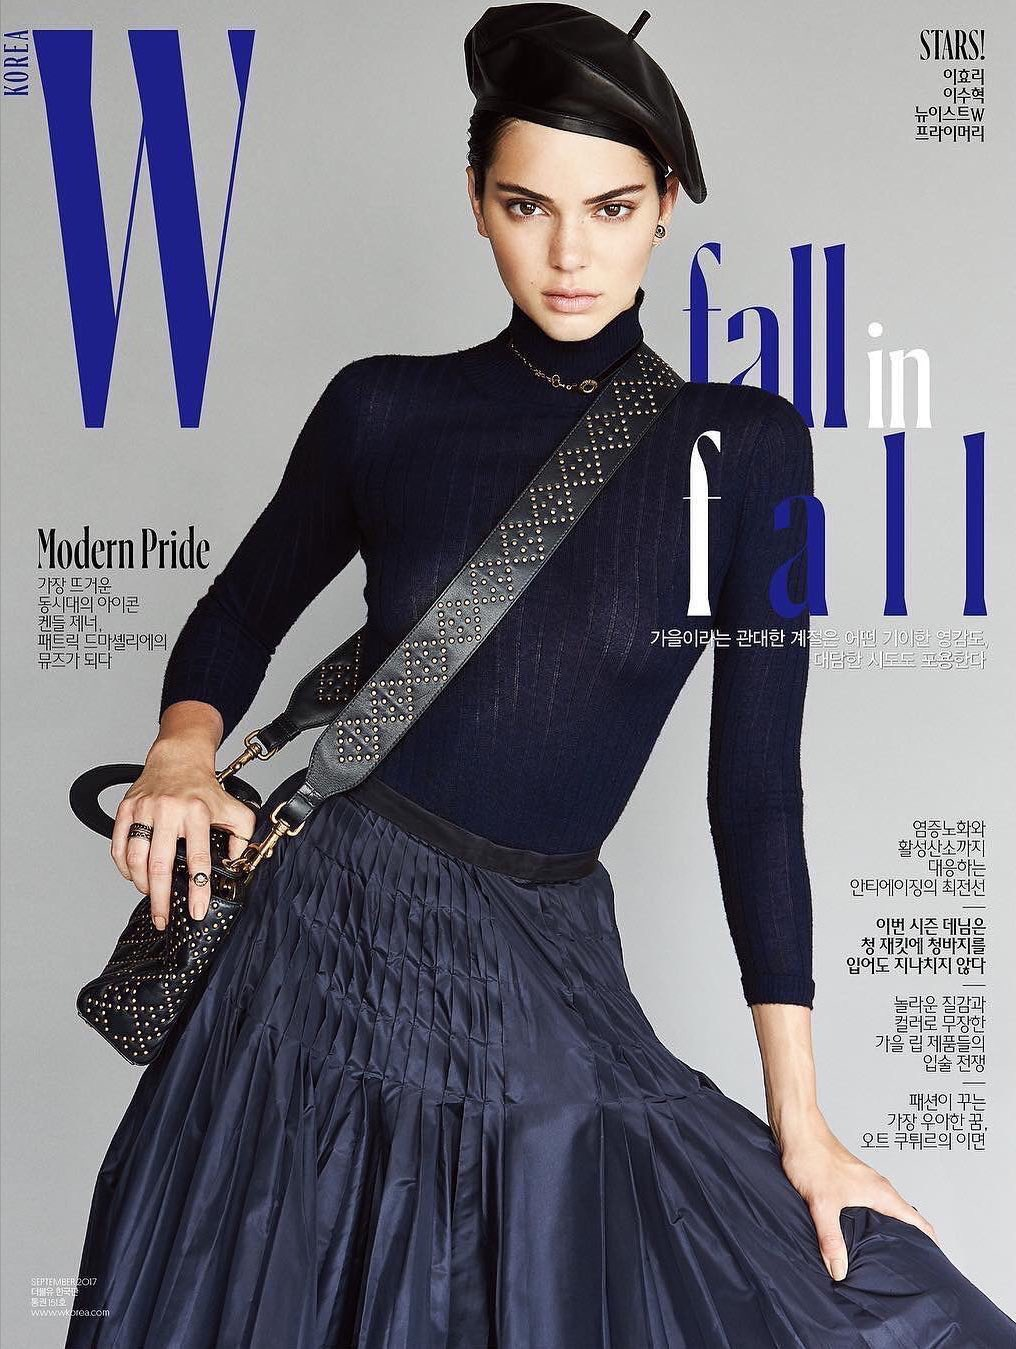 W Korea, September issue by Patrick Demarchelier https://t.co/vsRnHoQeco